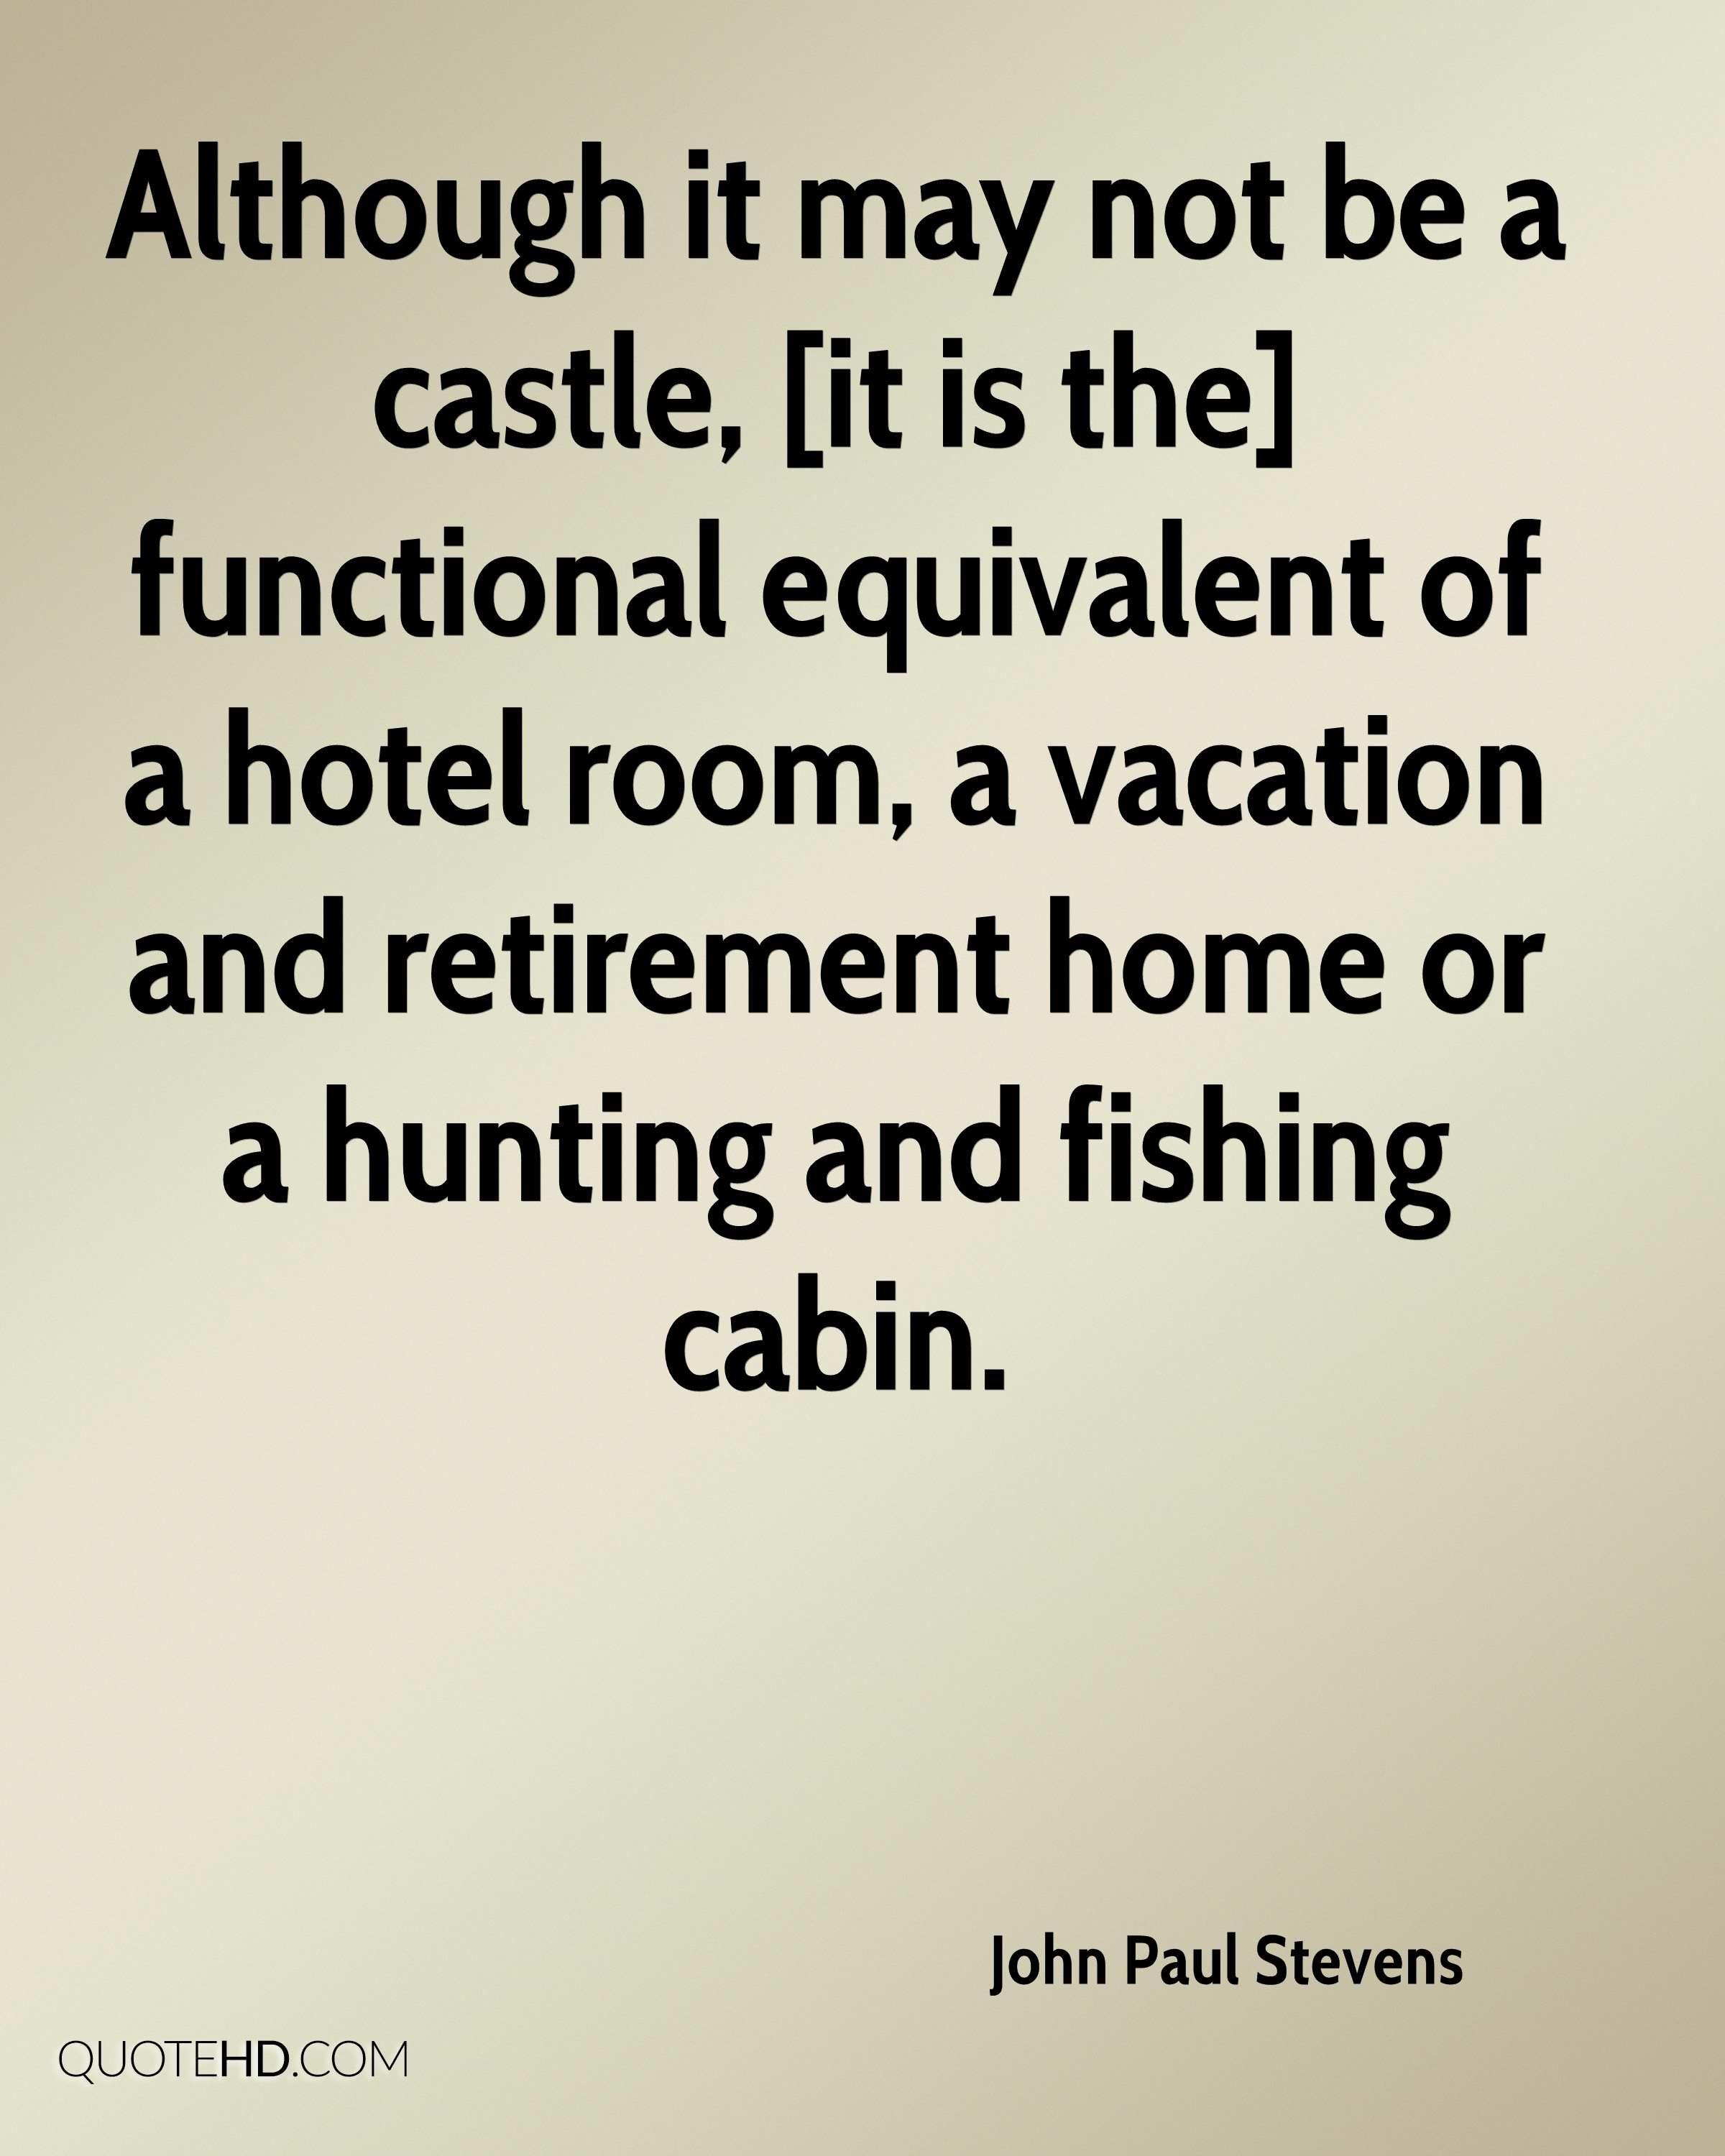 Although it may not be a castle, [it is the] functional equivalent of a hotel room, a vacation and retirement home or a hunting and fishing cabin.